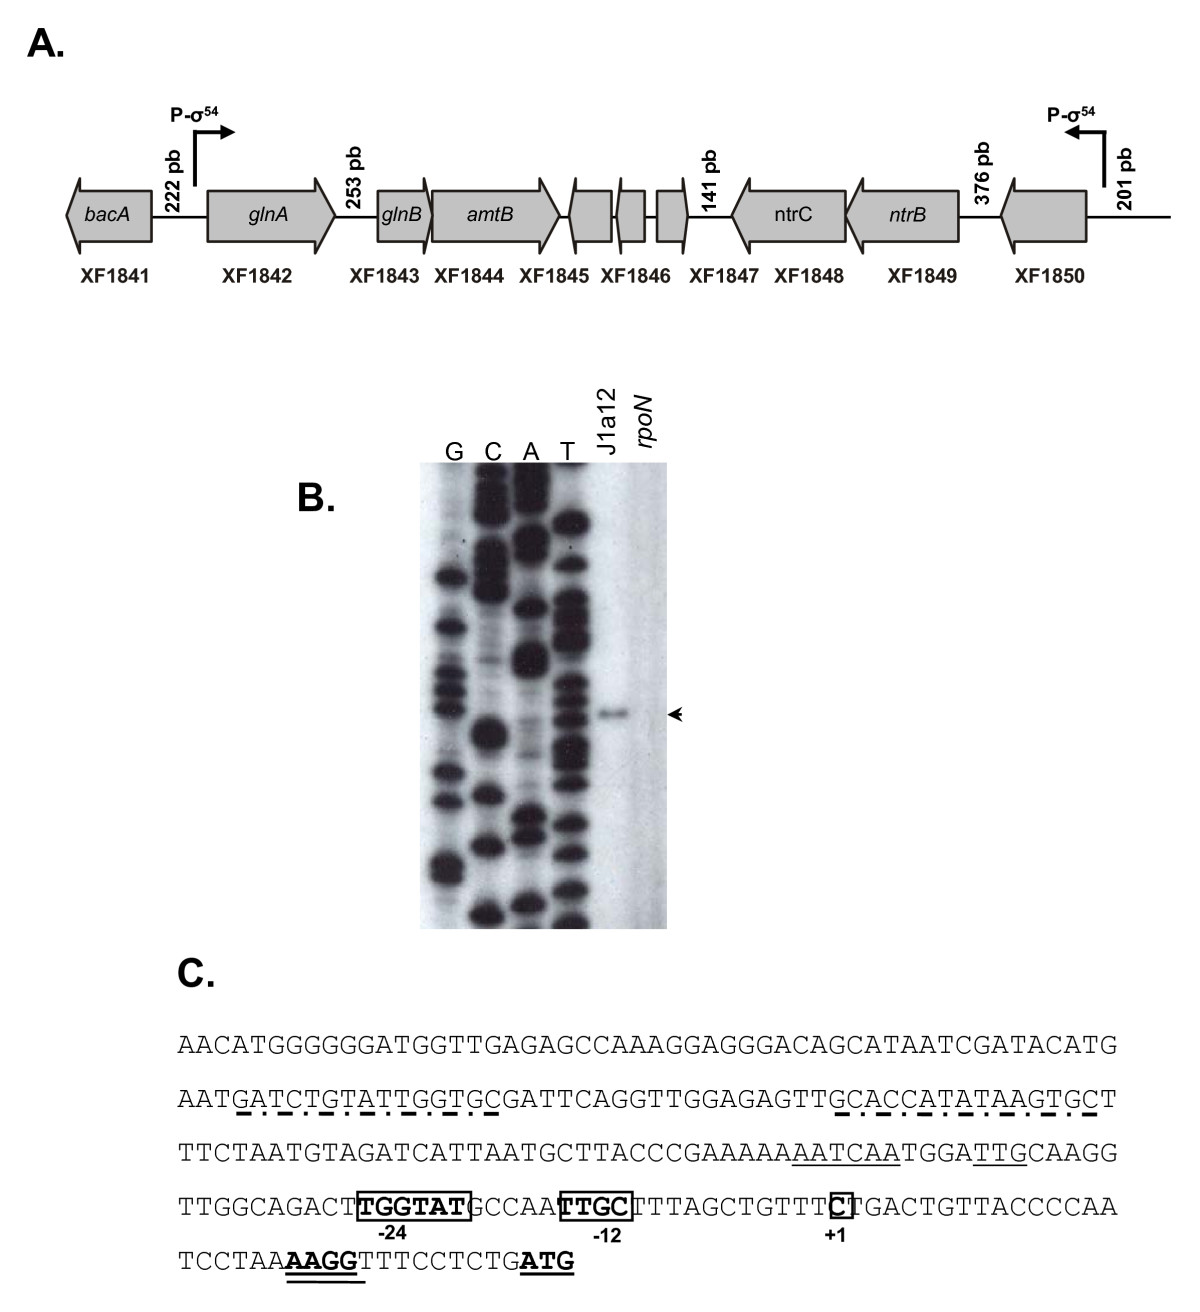 https://static-content.springer.com/image/art%3A10.1186%2F1471-2180-10-231/MediaObjects/12866_2010_Article_1187_Fig3_HTML.jpg